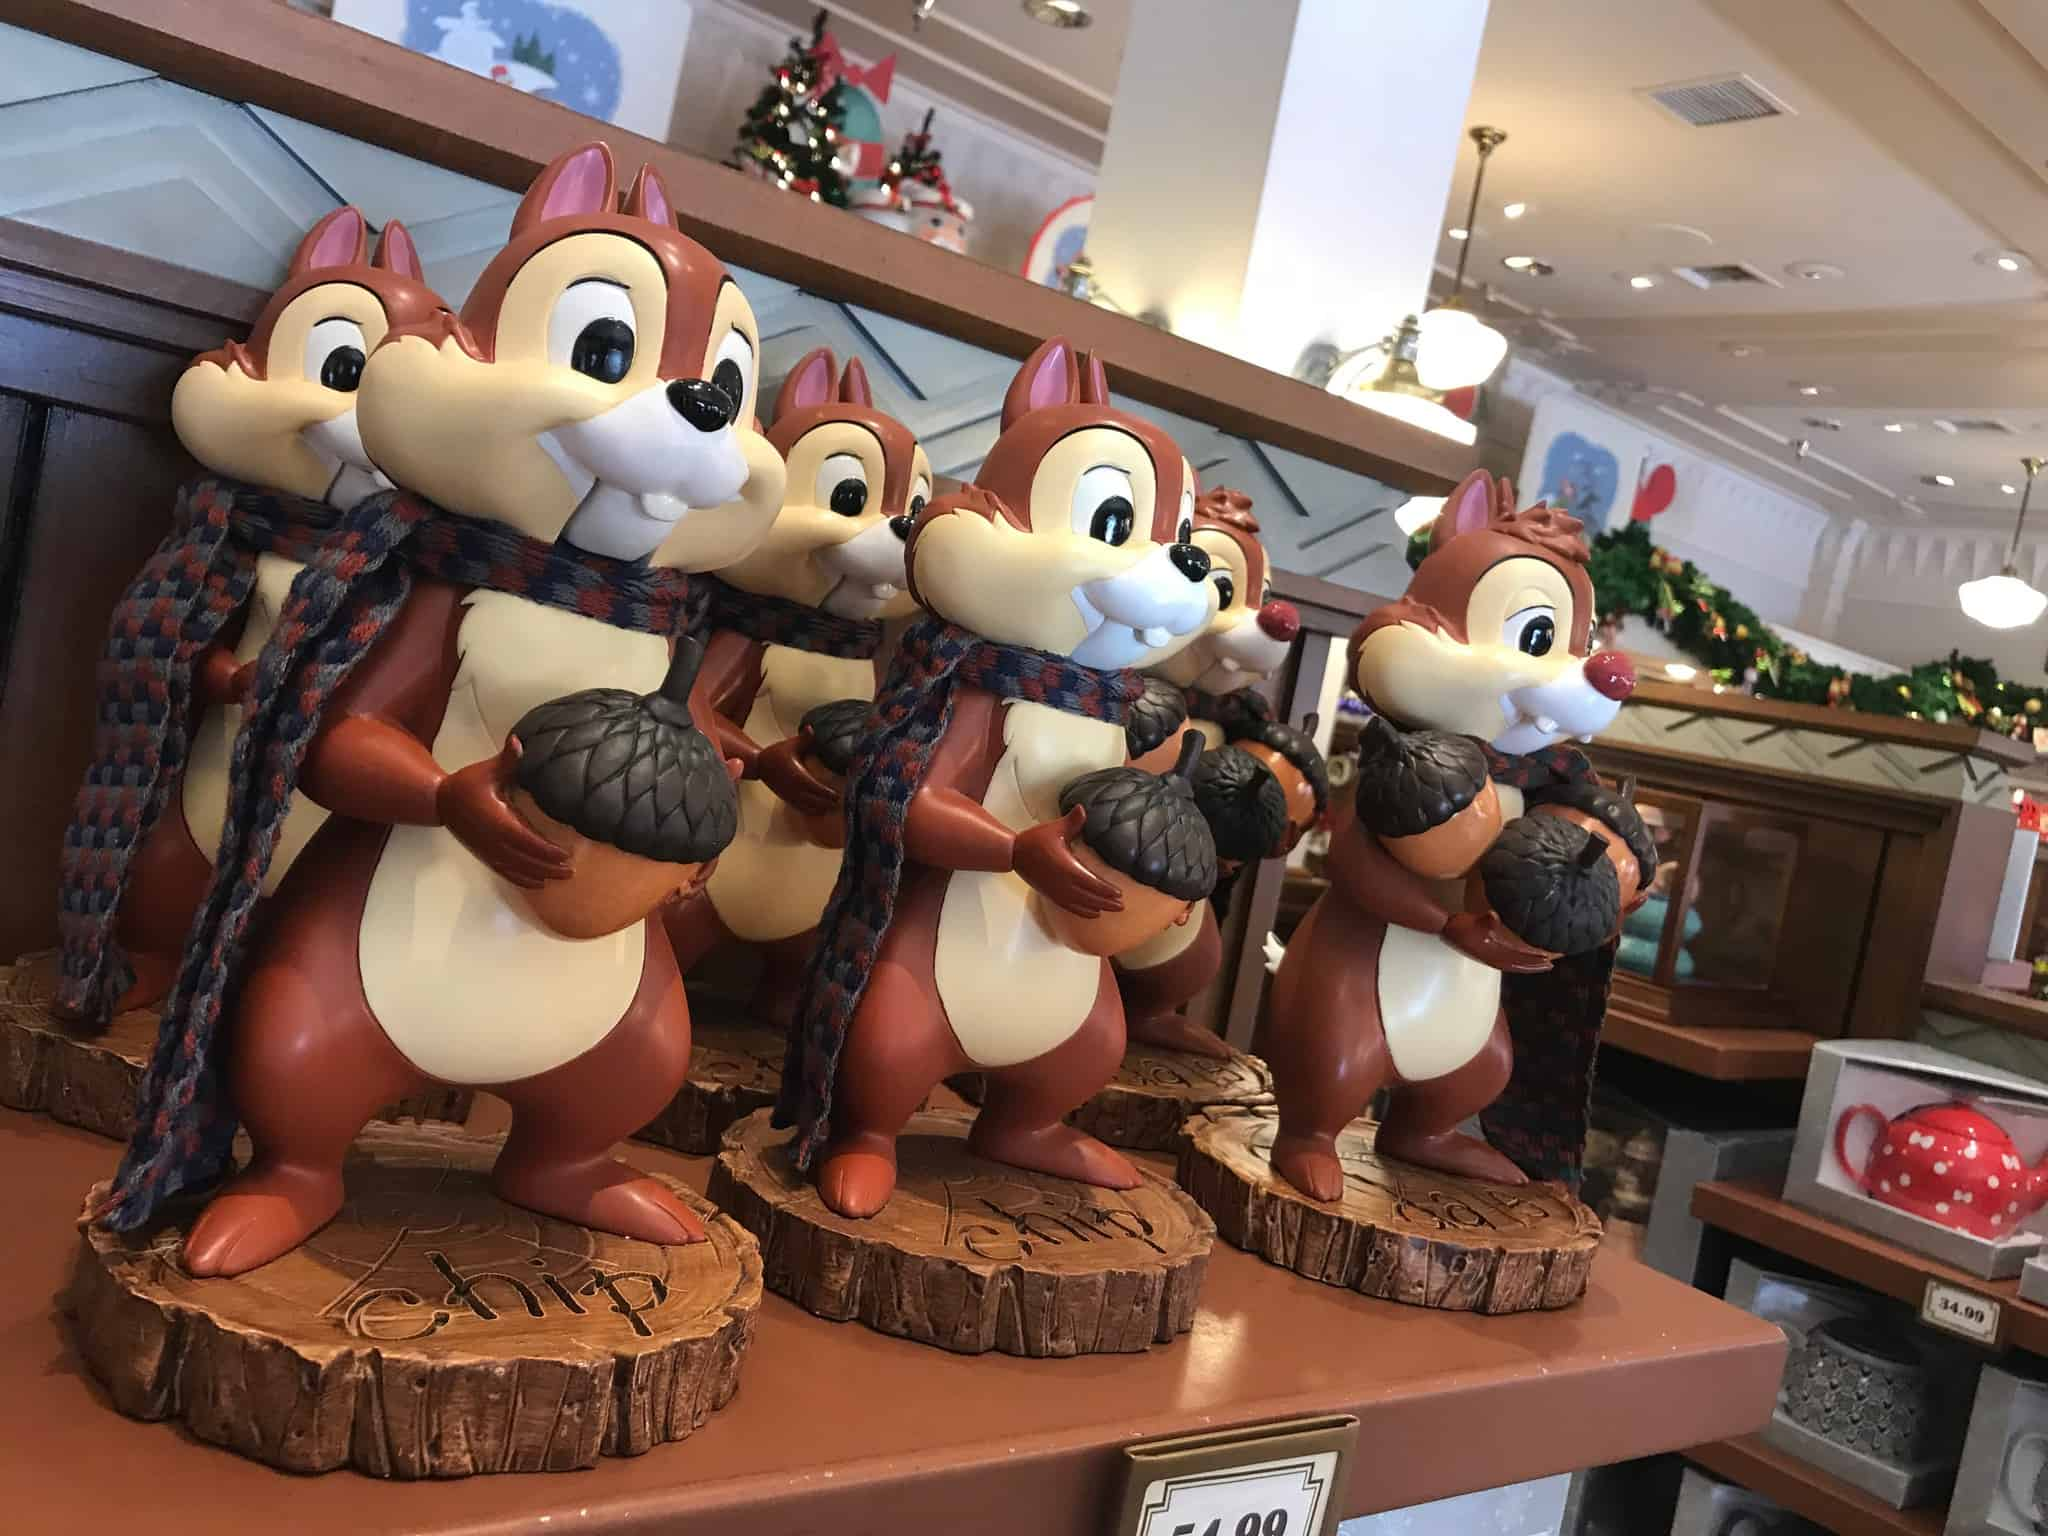 PHOTO REPORT: Disney's Hollywood Studios 10/17/17 (Merry Christmas, Happy Star Wars & Toy Story Land, ETC.)